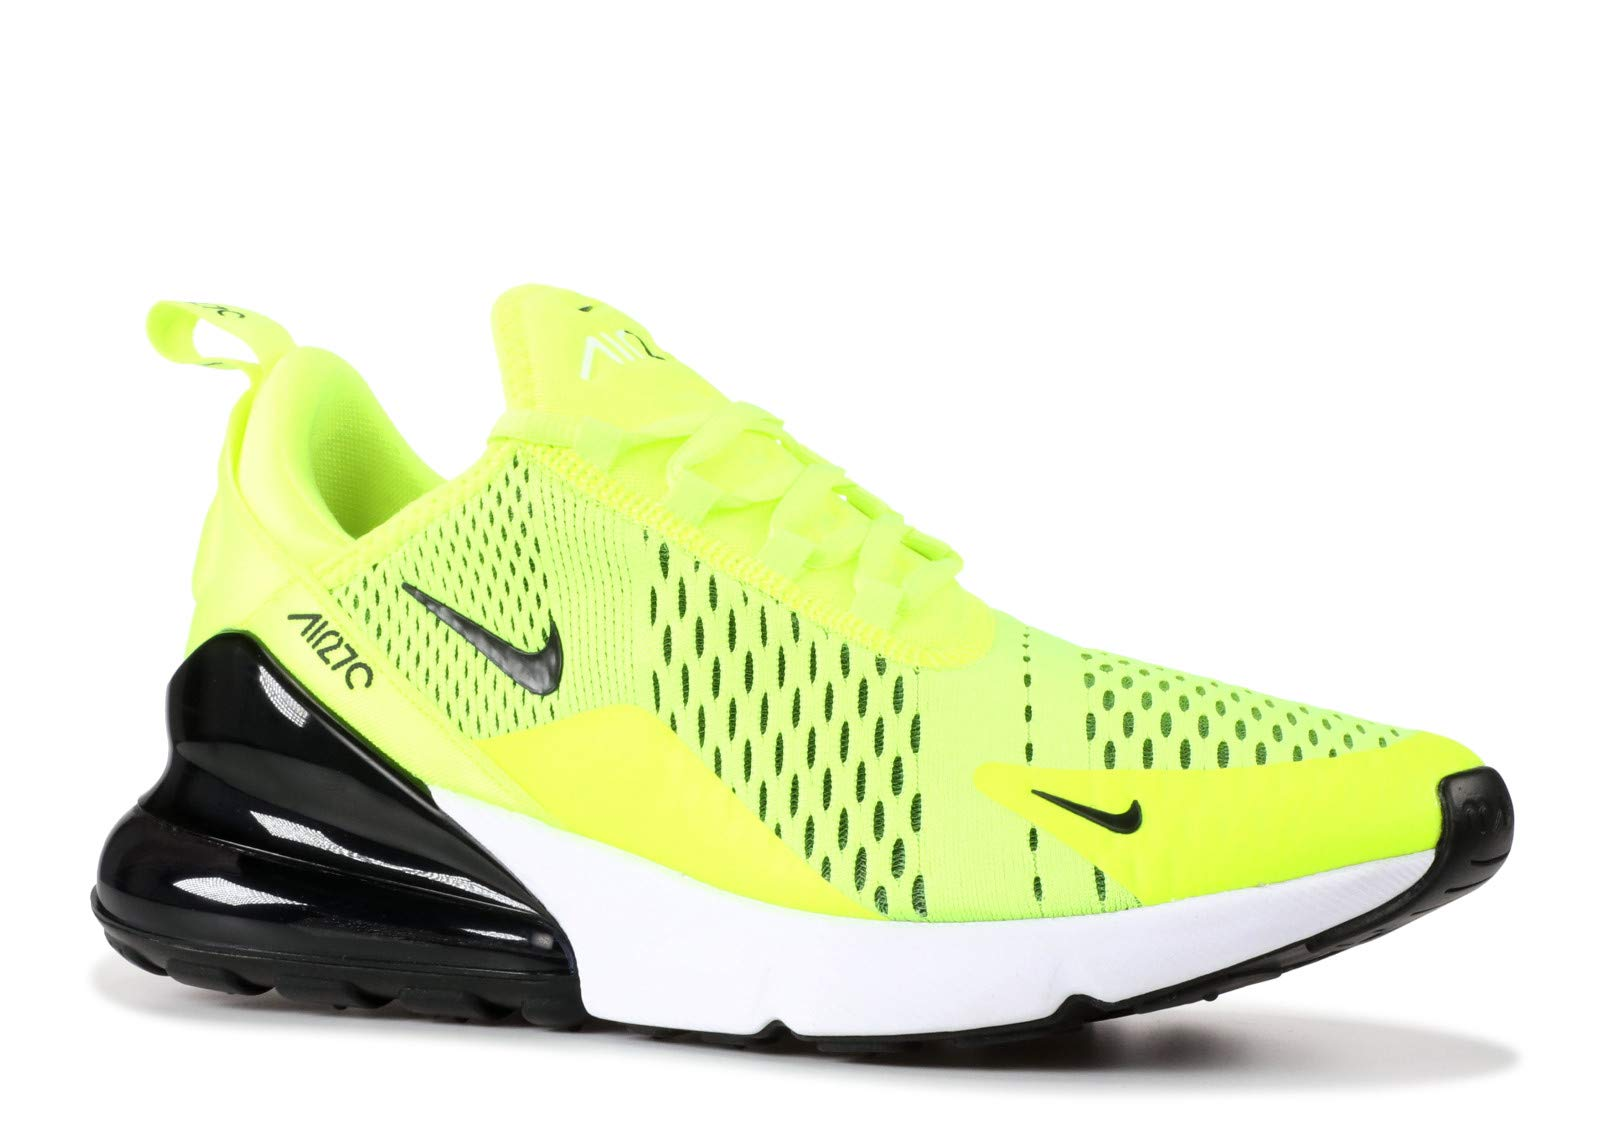 huge discount f7f4c c1eed Galleon - Nike Mens Air Max 270 Running Shoes Black Volt Oil Grey AH8050-701  Size 10.5